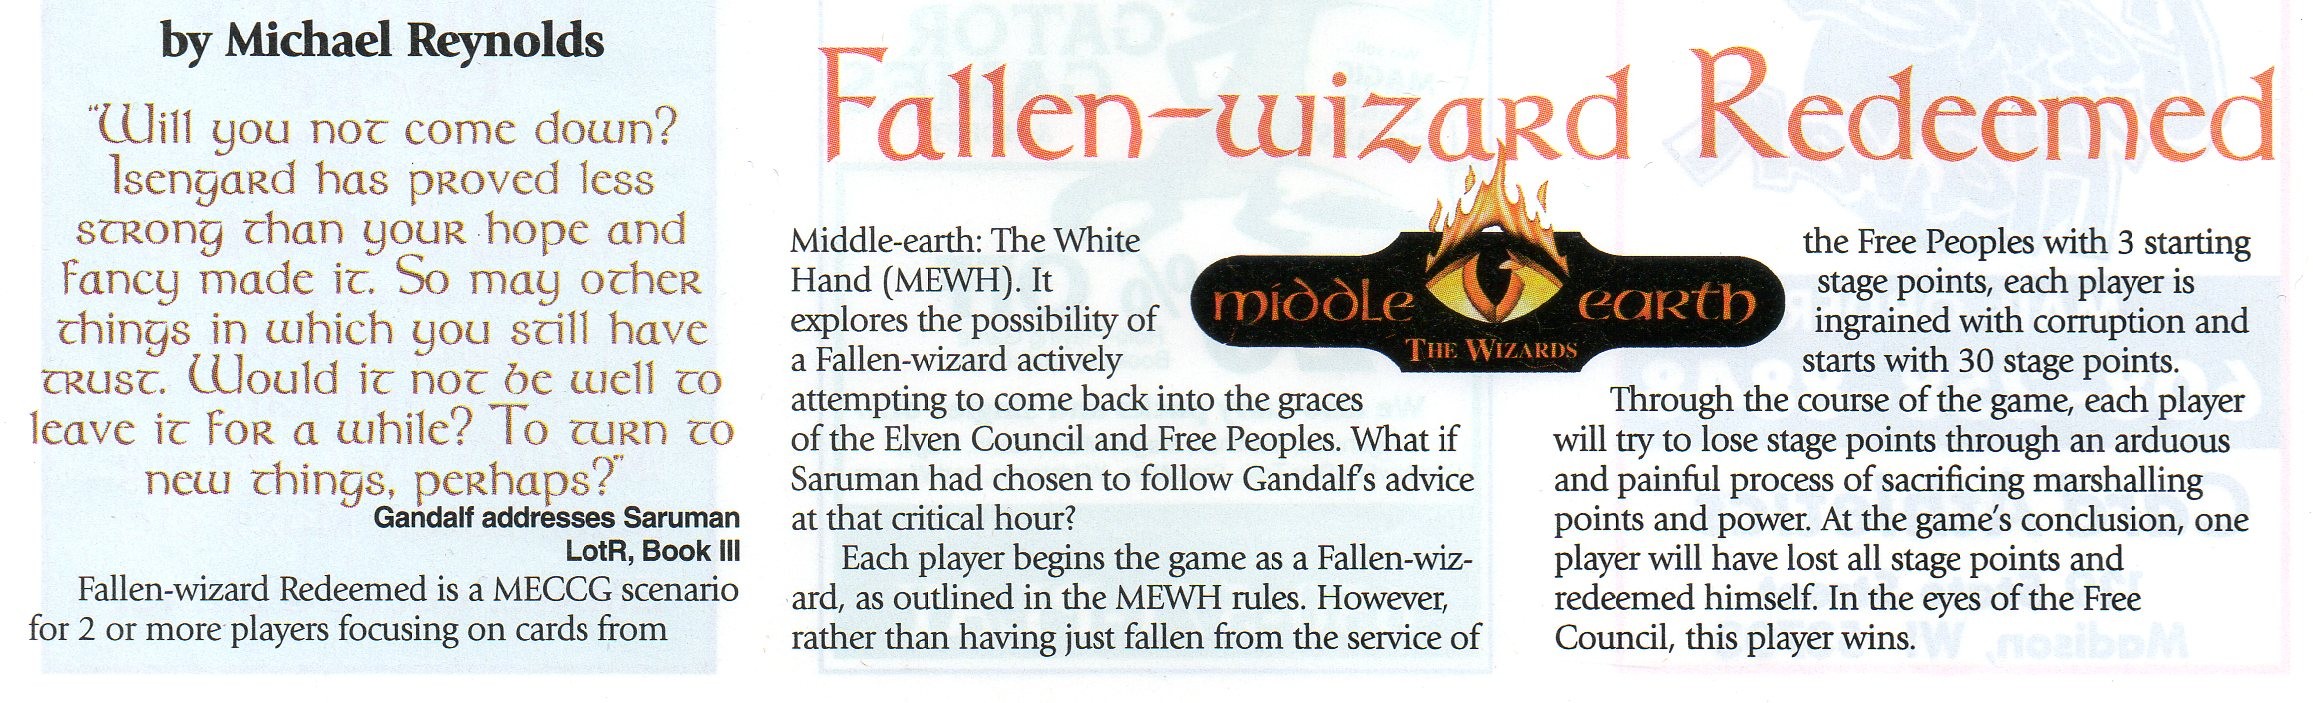 23_4_5_Fallen-wizard_Redeemed.jpg